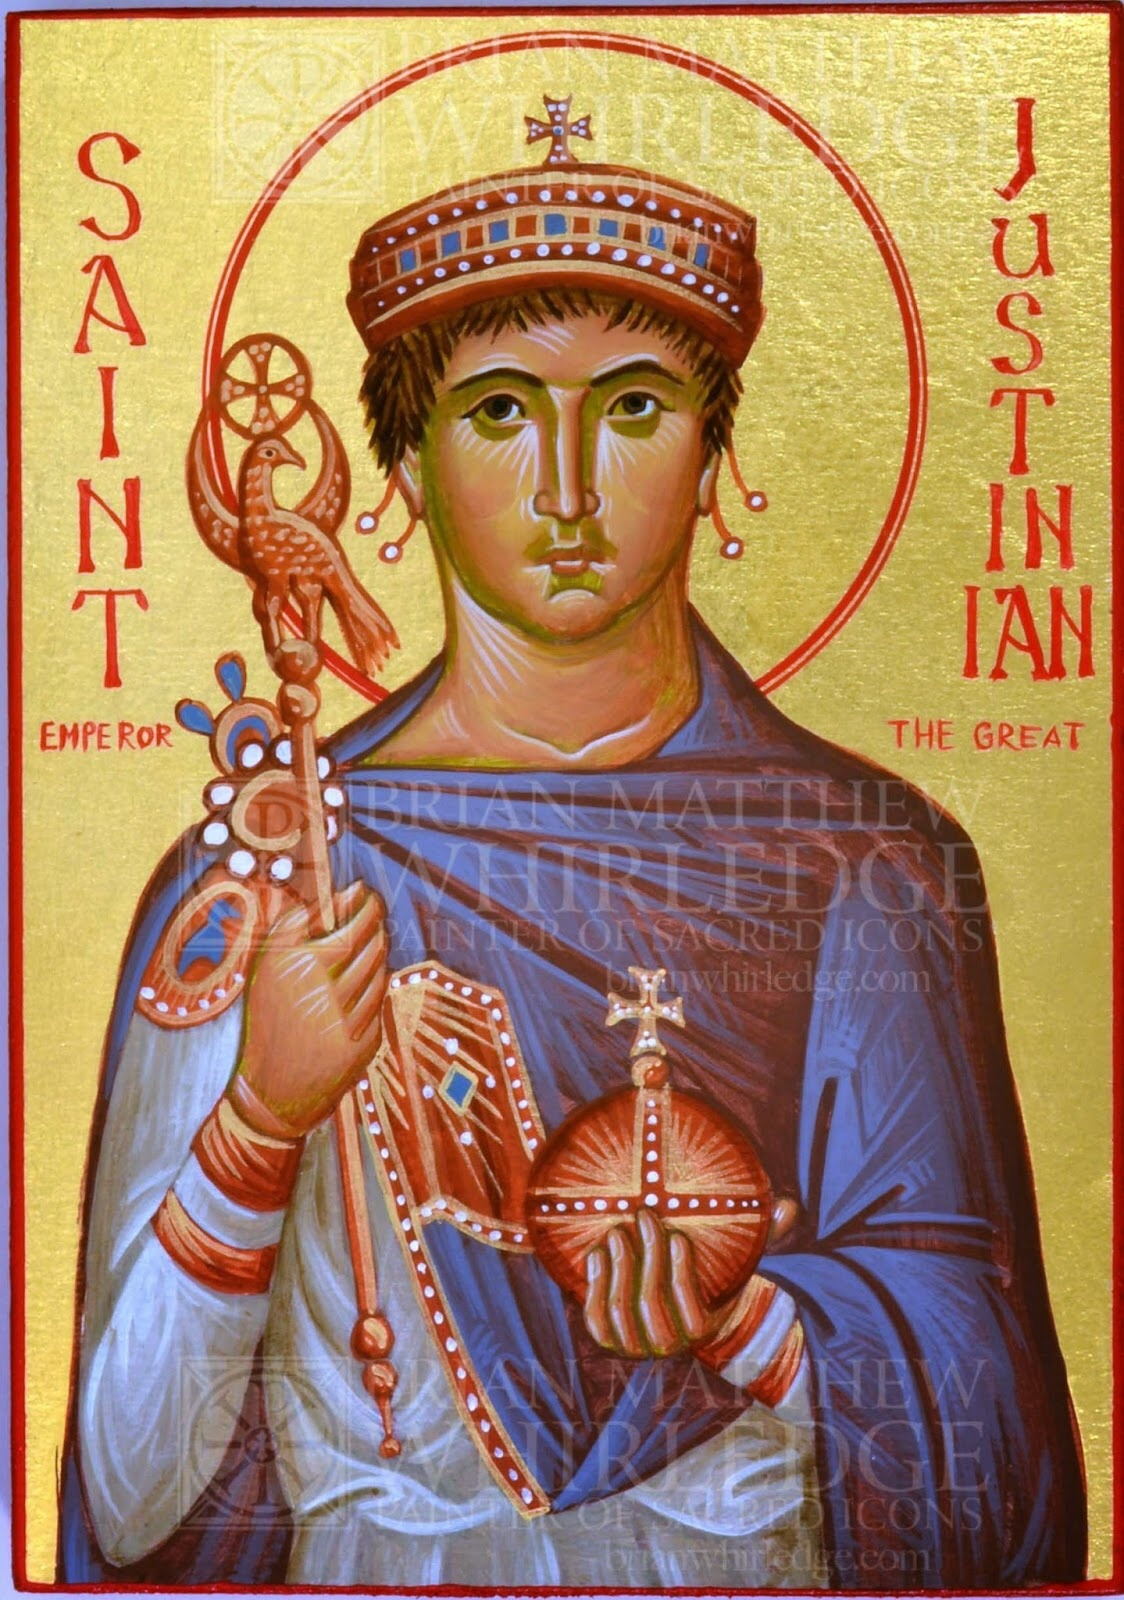 St. Justinian the Emperor ca. 483-565 — Classical Christianity